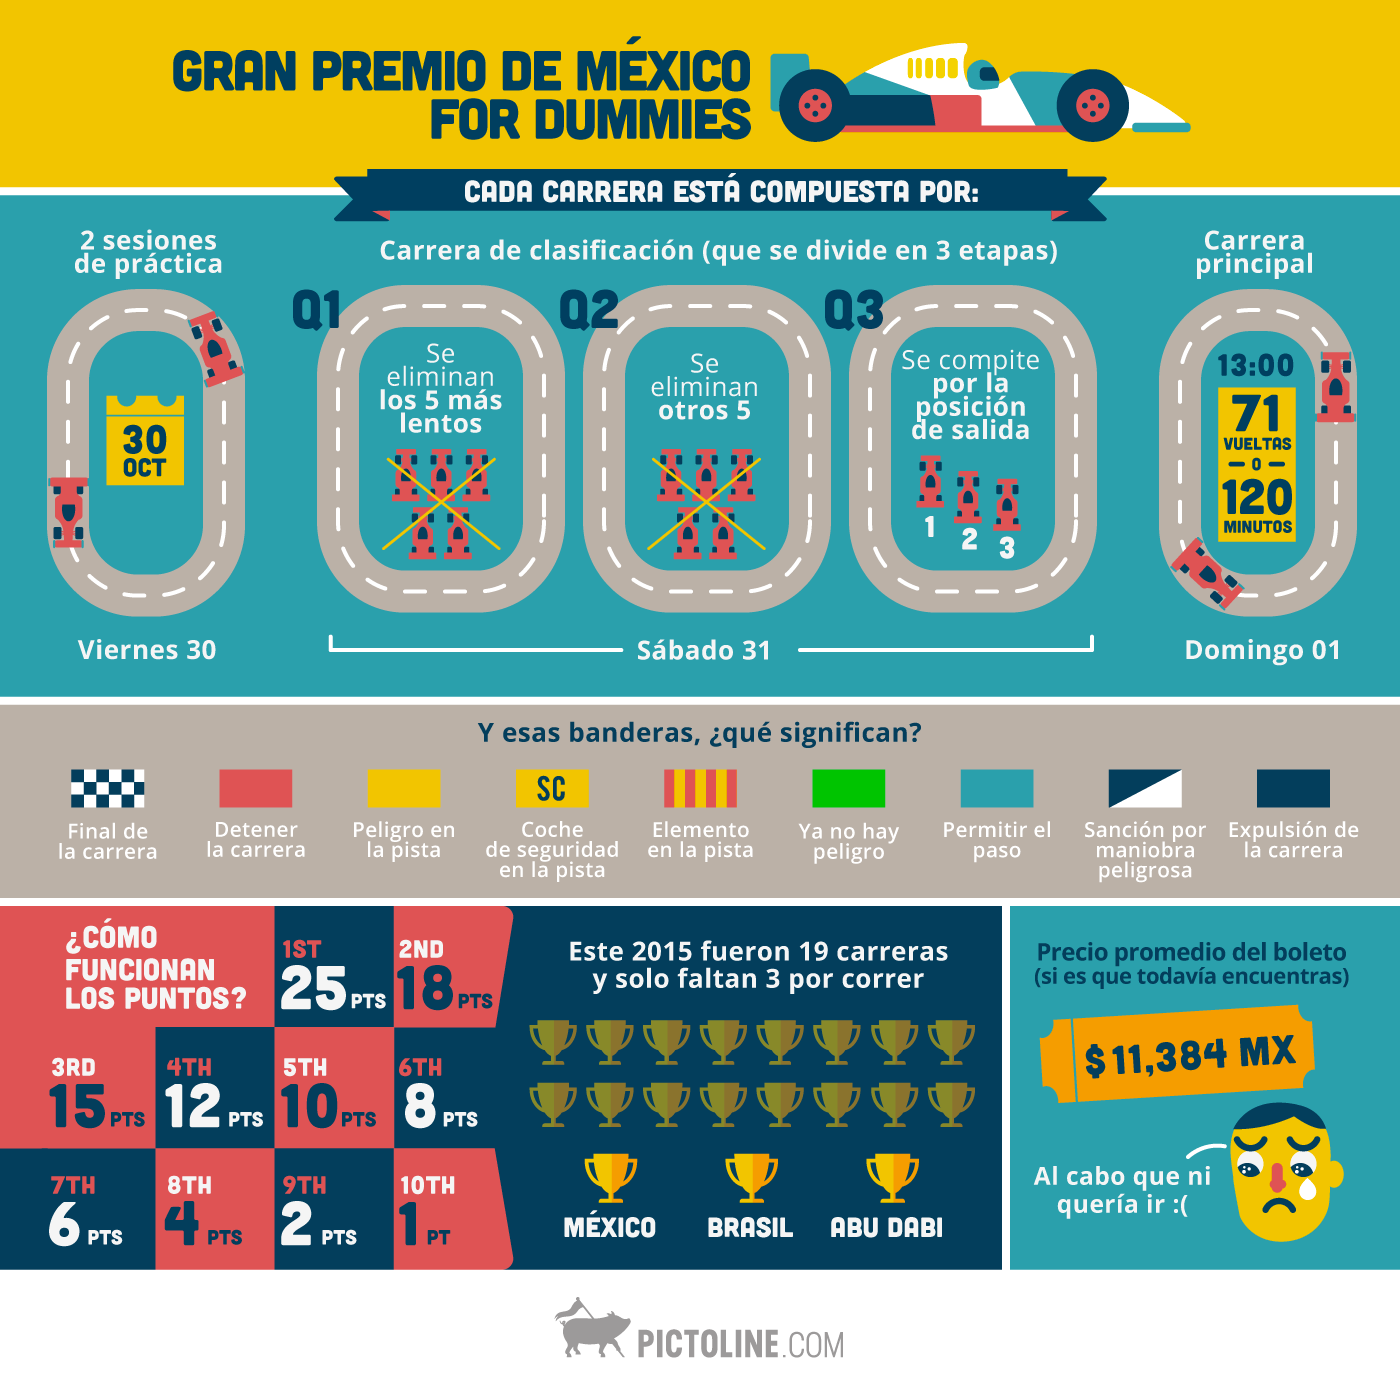 Gran Premio de México for Dummies